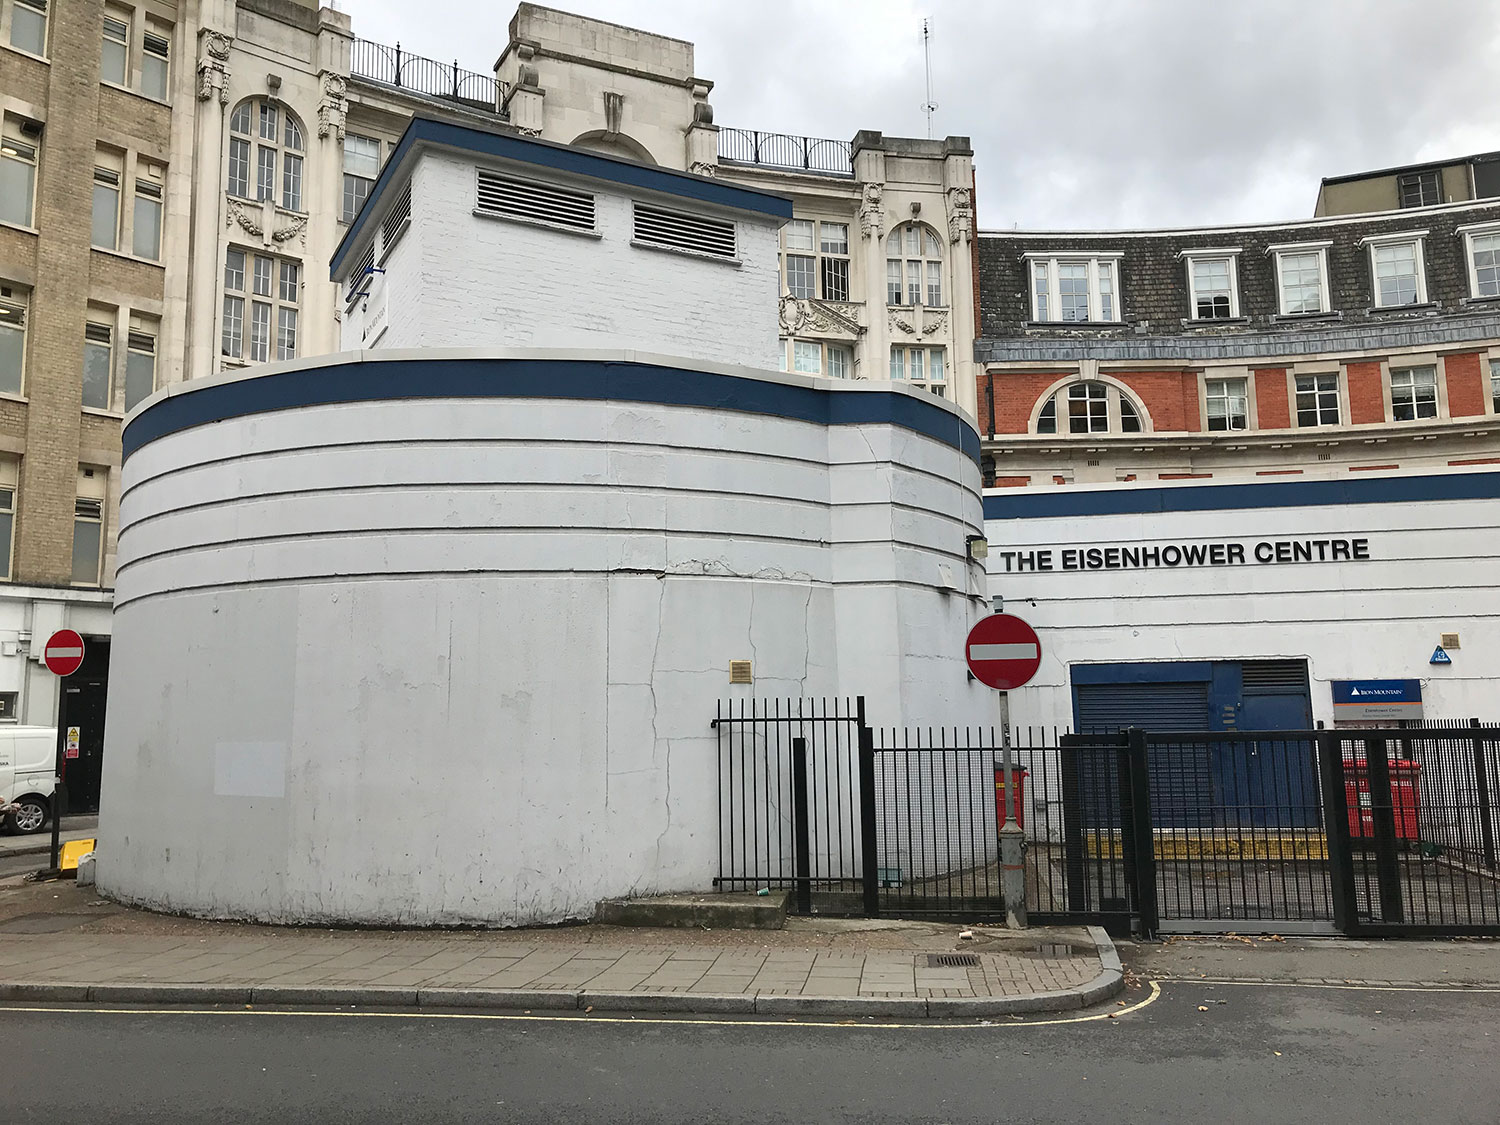 stationery walks - bloomsbury - london - eisenhower centre